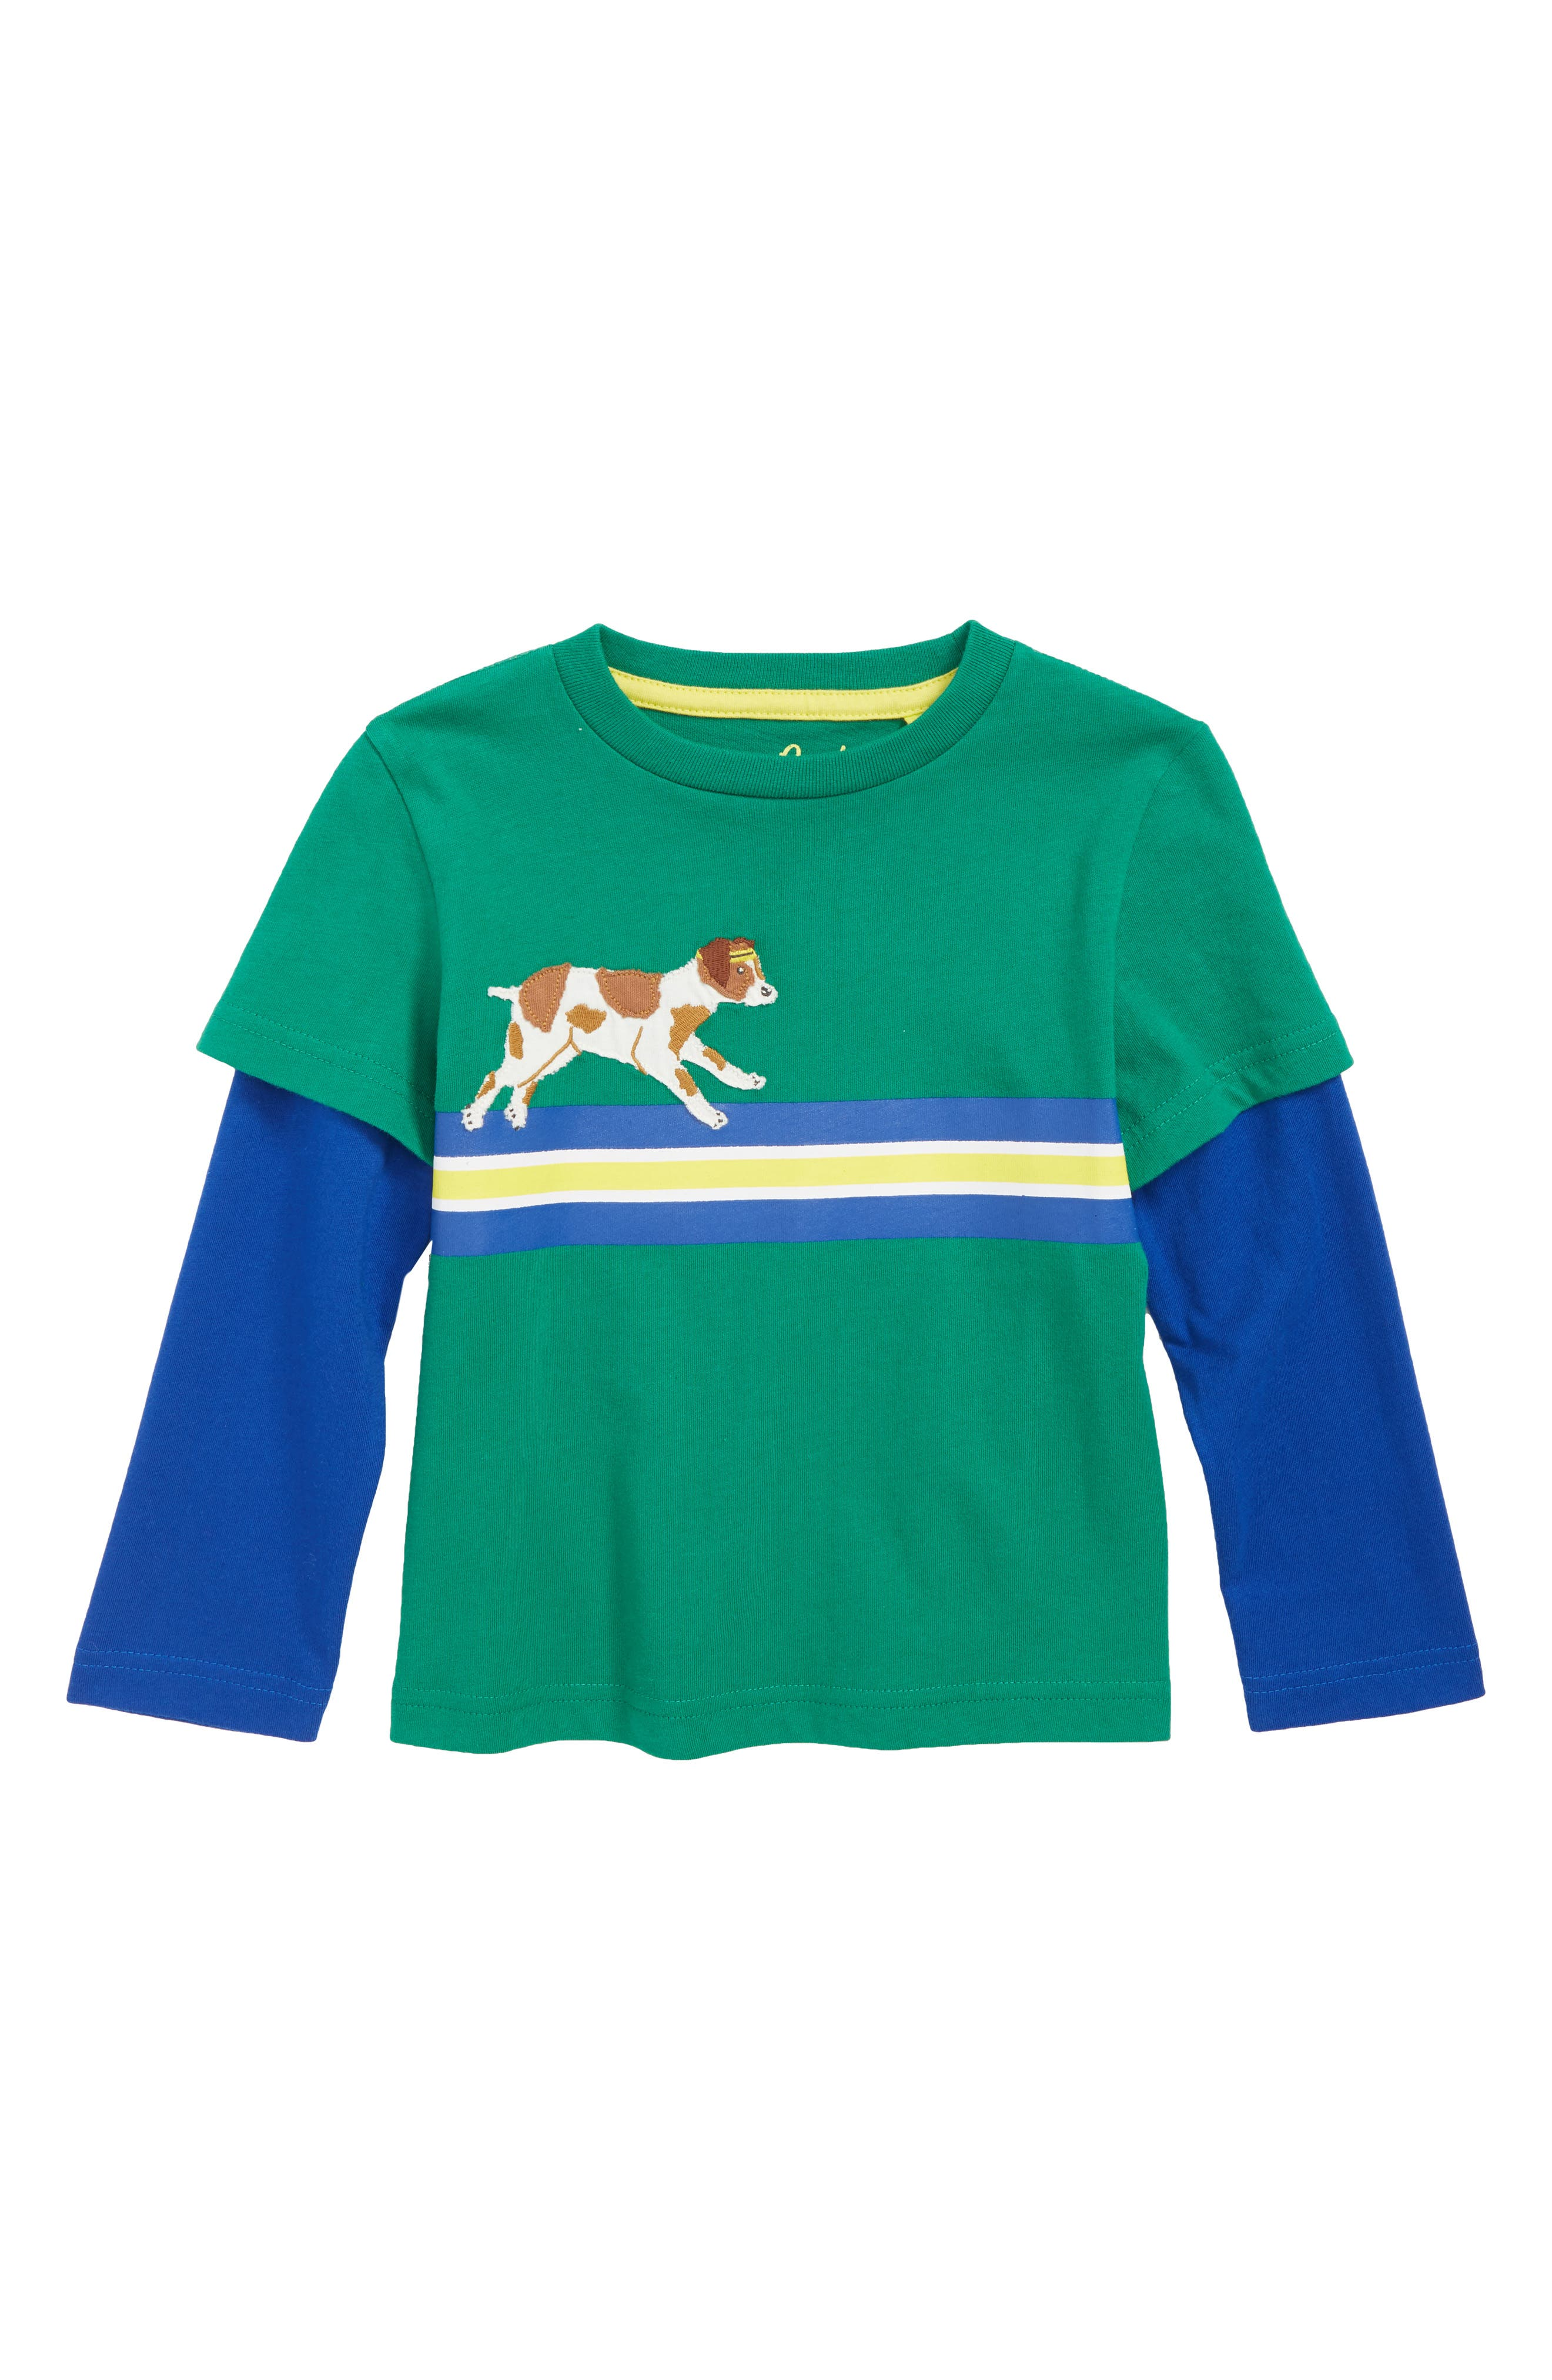 Active Animals Layered T-Shirt,                         Main,                         color, 315